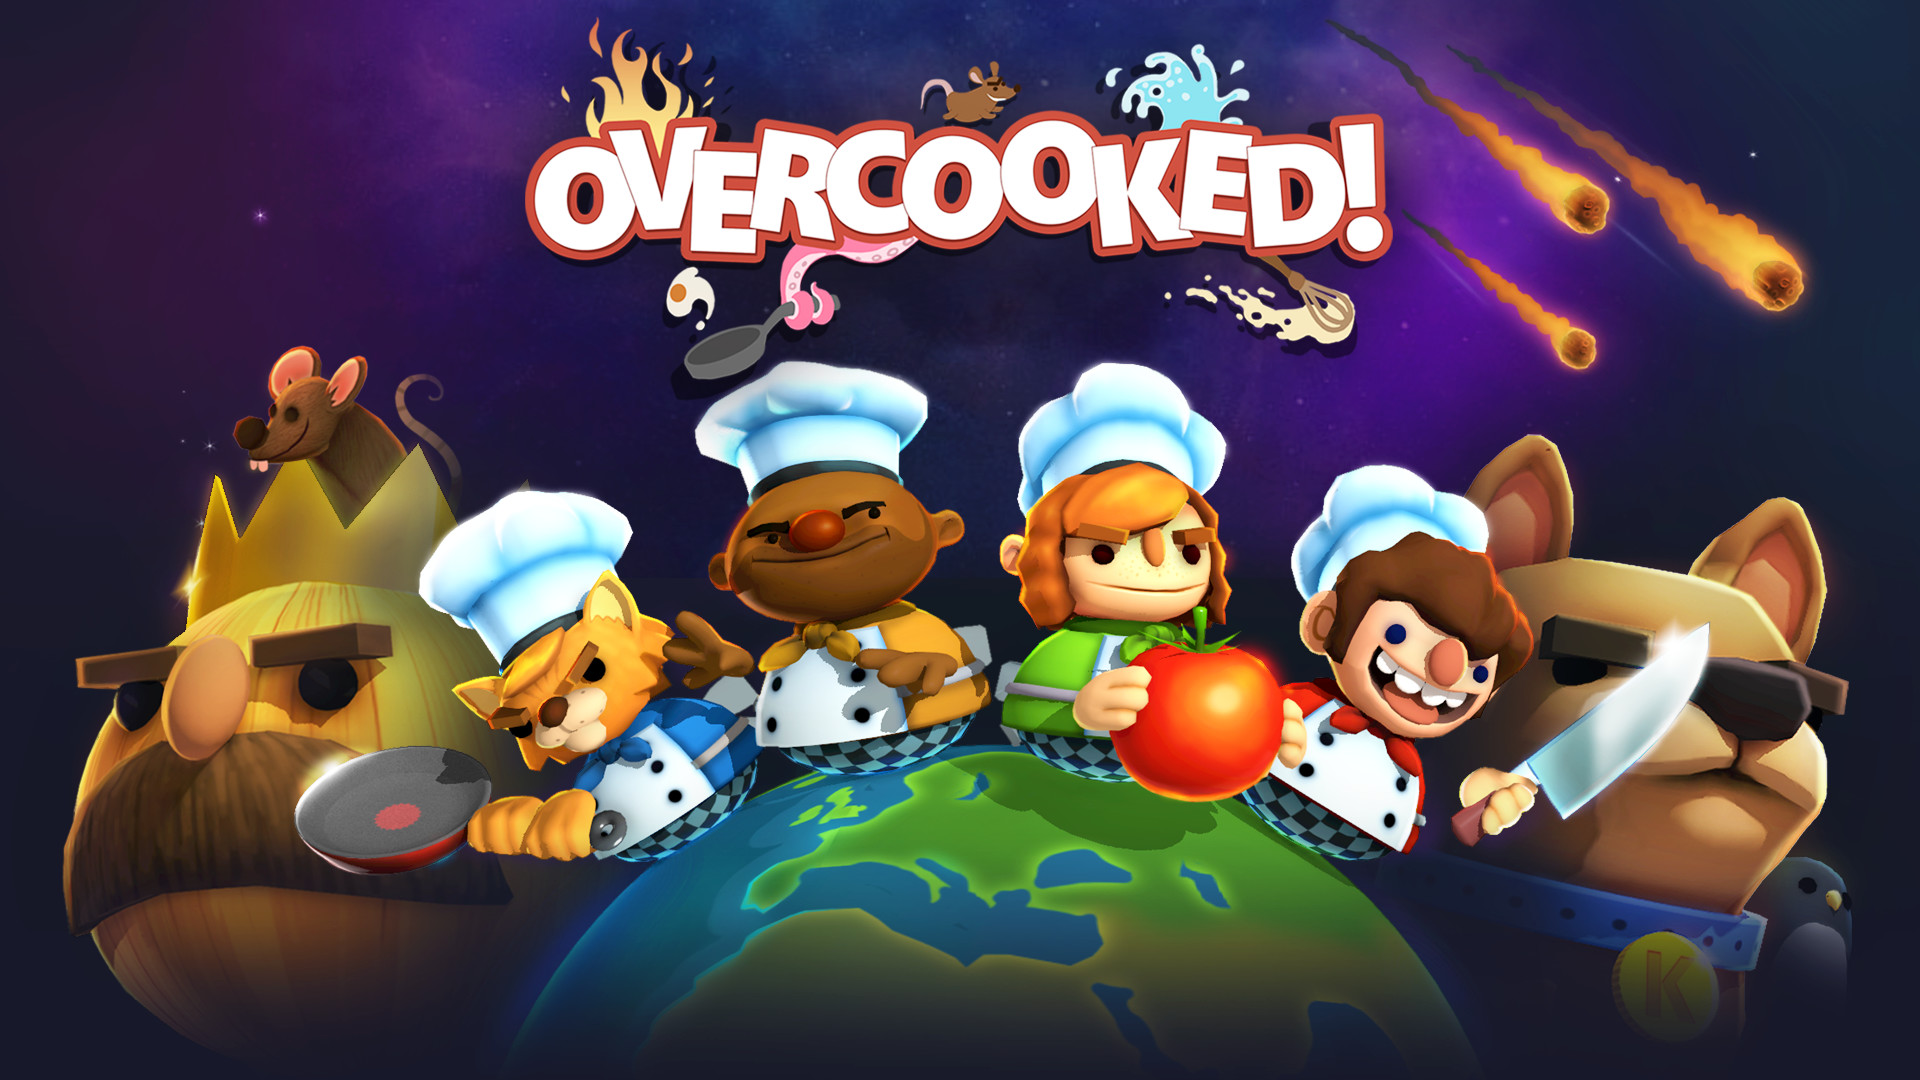 Overcooked telecharger gratuit de PC et Torrent